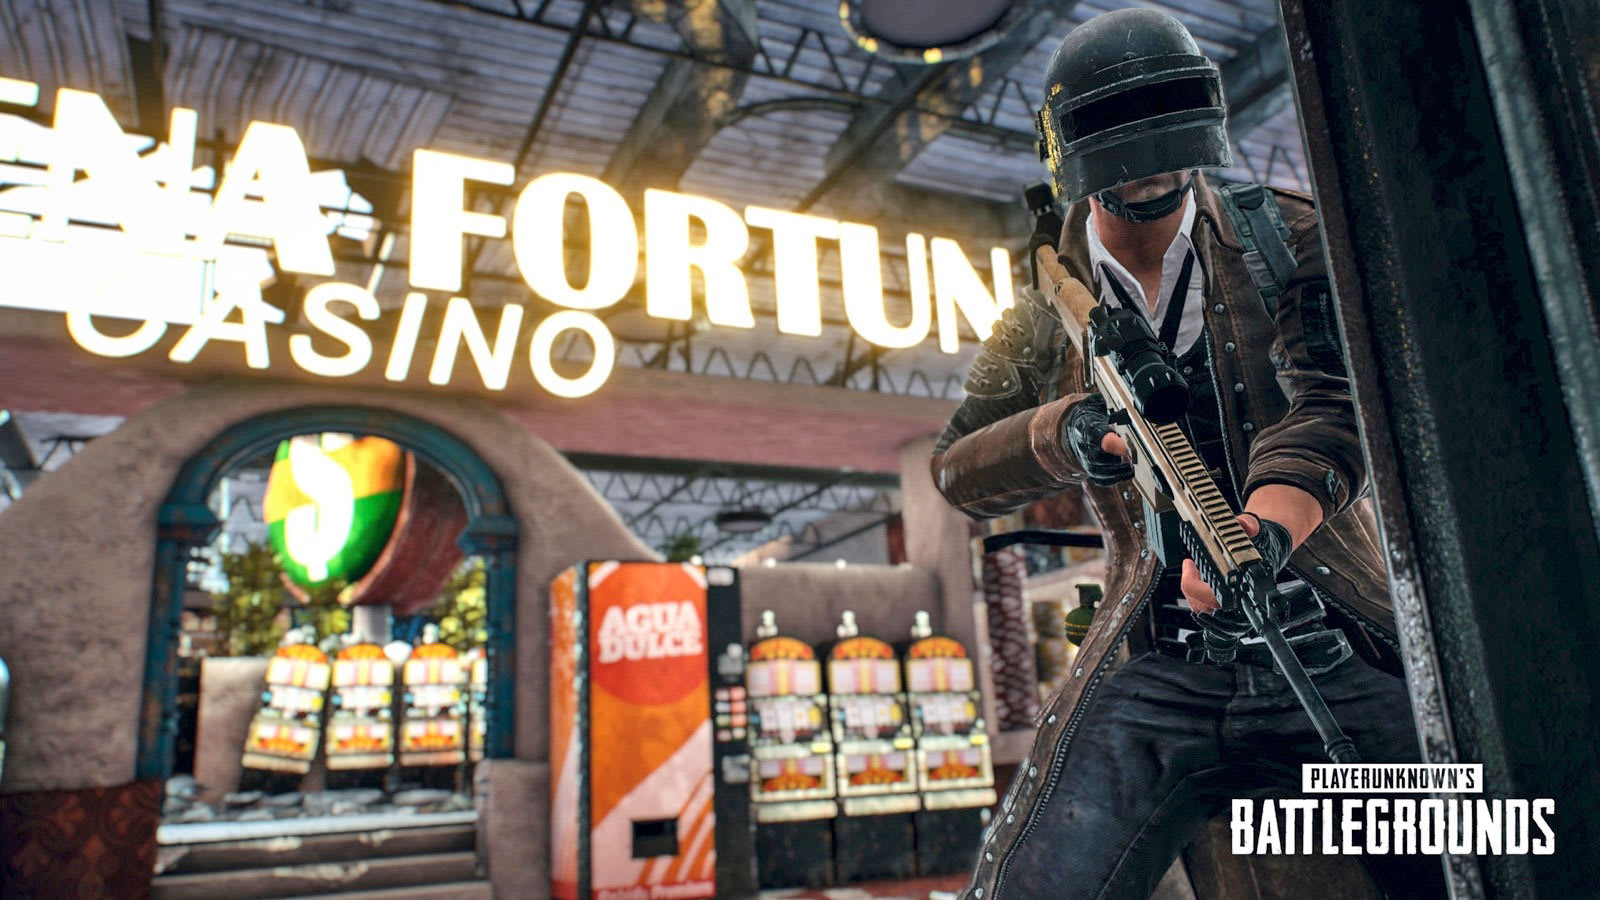 Pubg Roadmap Includes New Maps And More Stable Gameplay